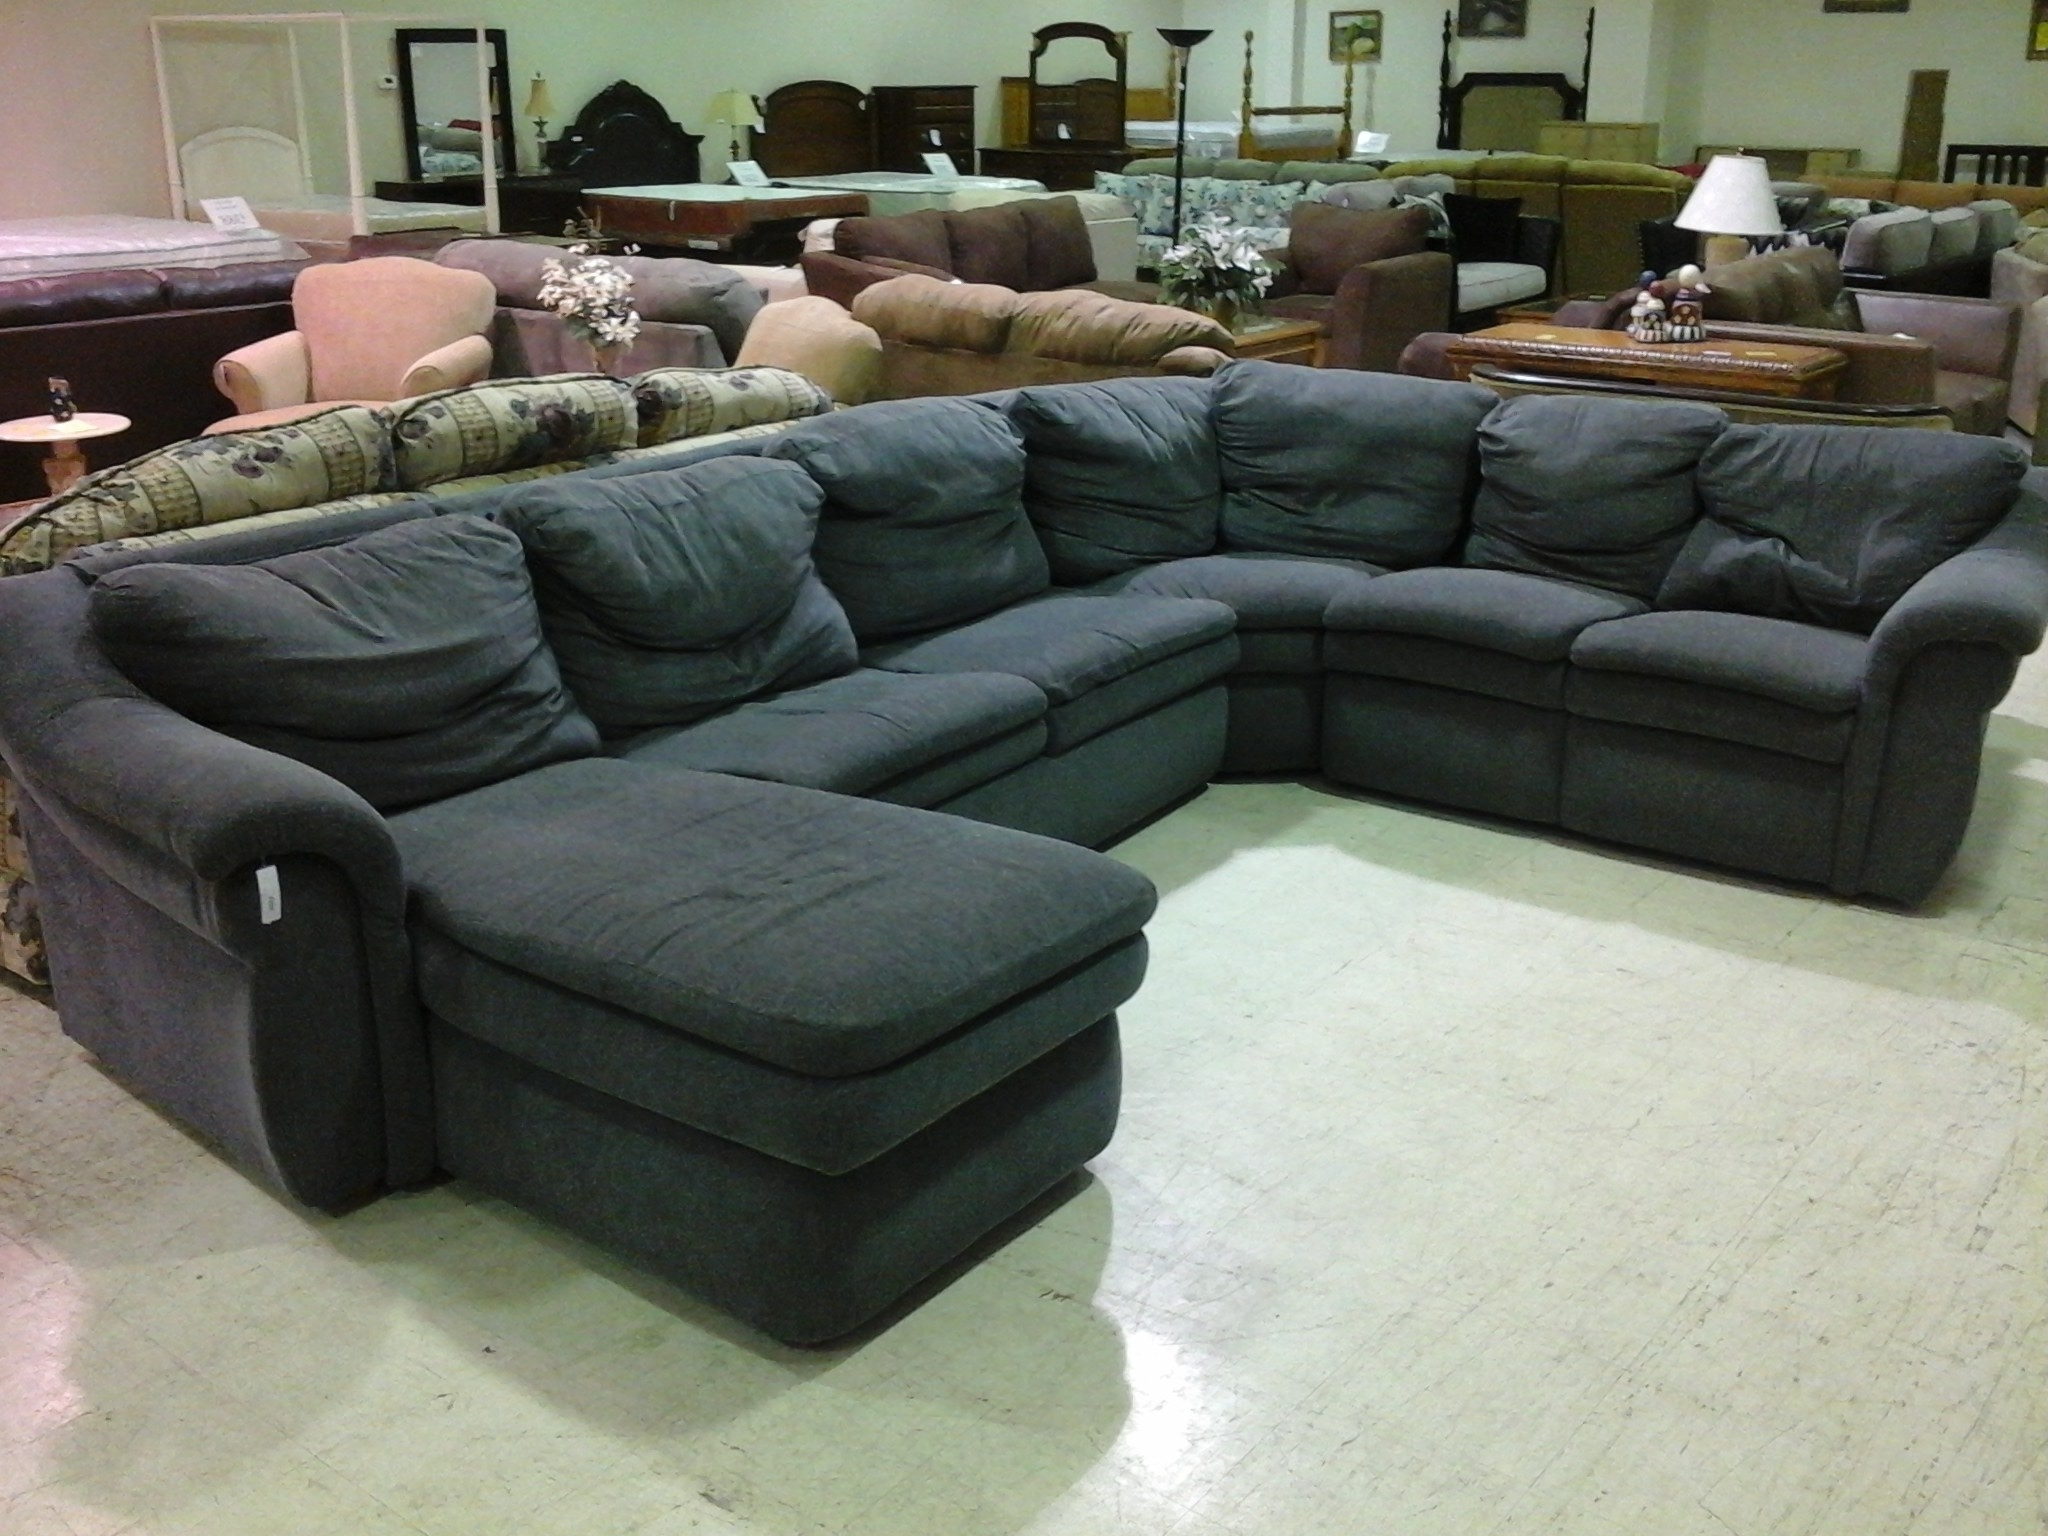 Unique U Shaped Sectional Sofa With Recliners – Buildsimplehome With 2018 Reclining U Shaped Sectionals (View 15 of 15)